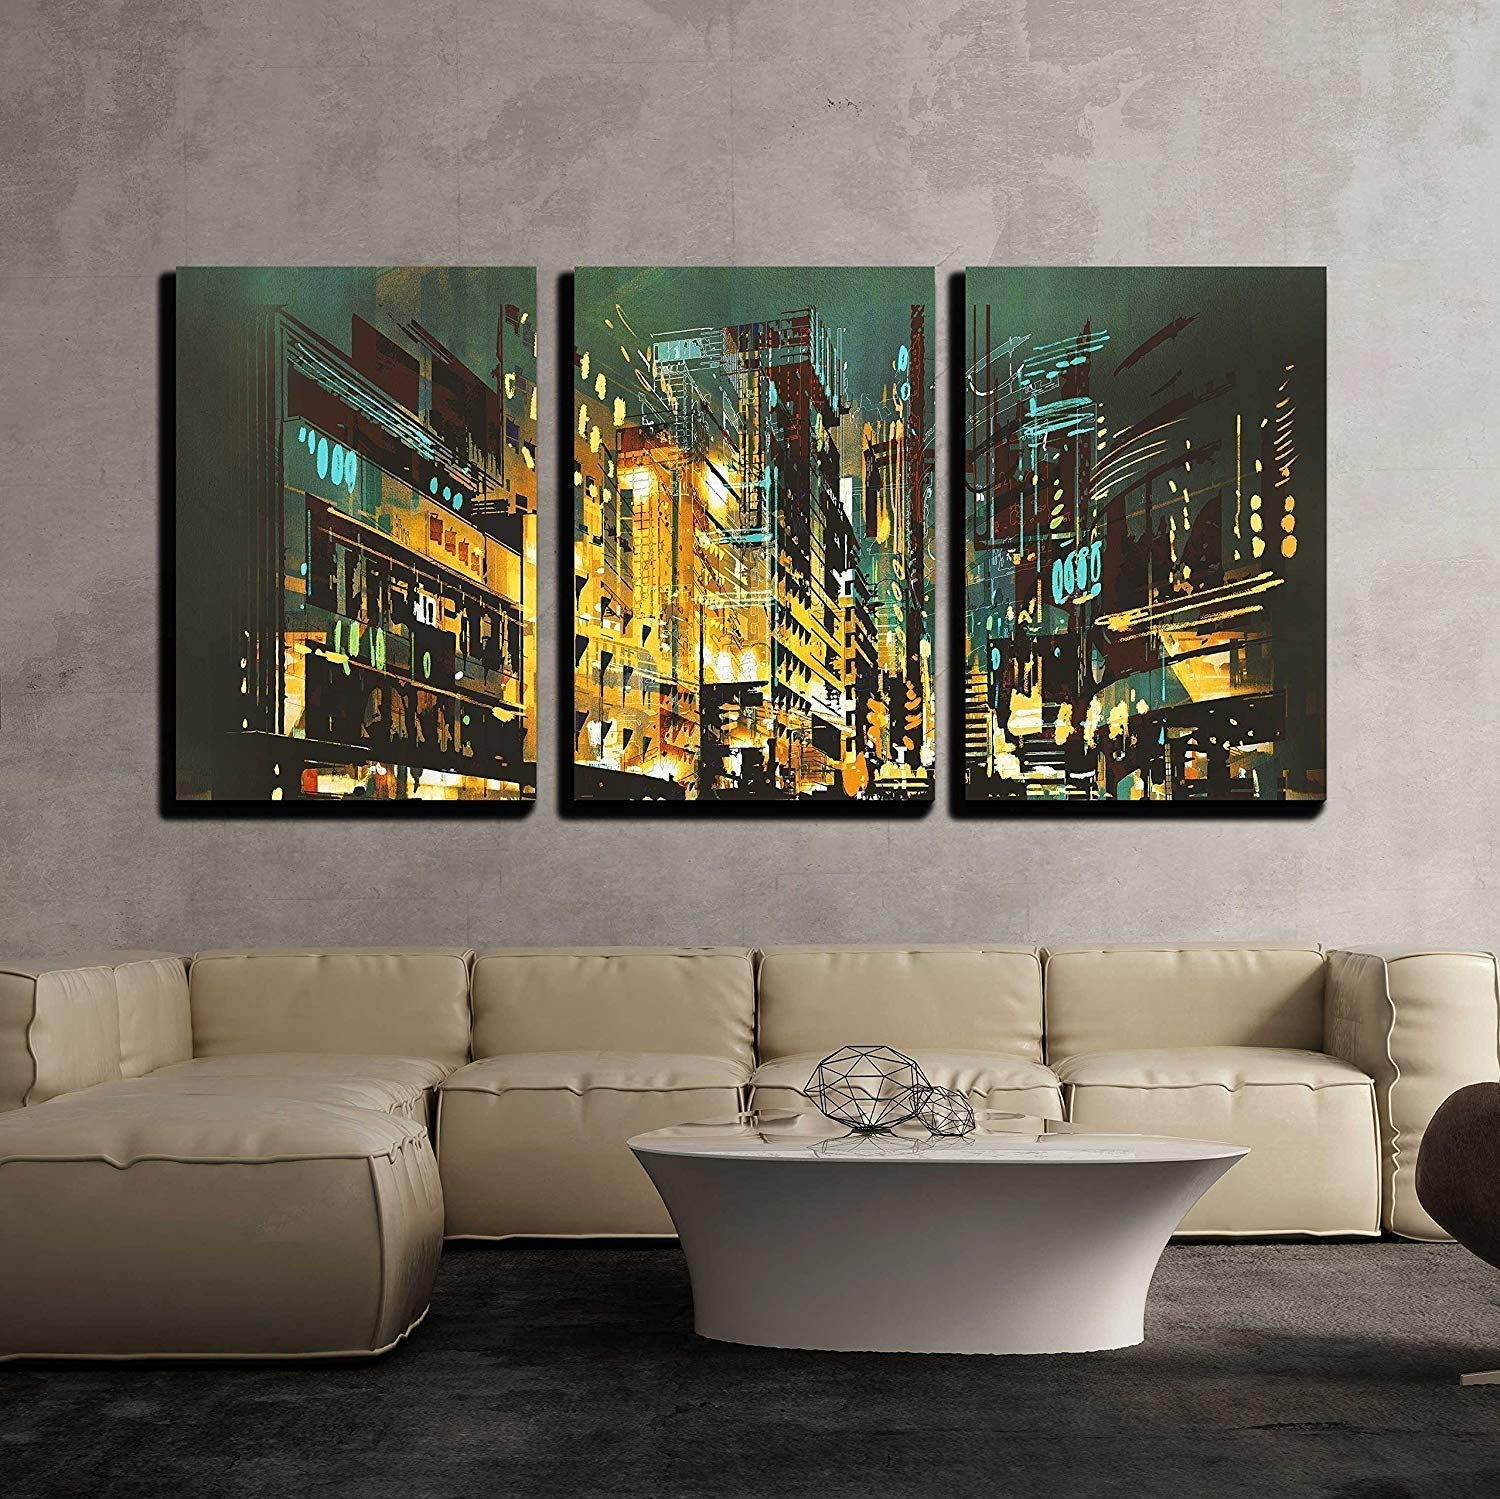 wall26 - 3 Piece Canvas Wall Art - Night Scene Cityscape,Abstract Art Painting - Modern Home Decor Stretched and Framed Ready to Hang - 24''x36''x3 Panels